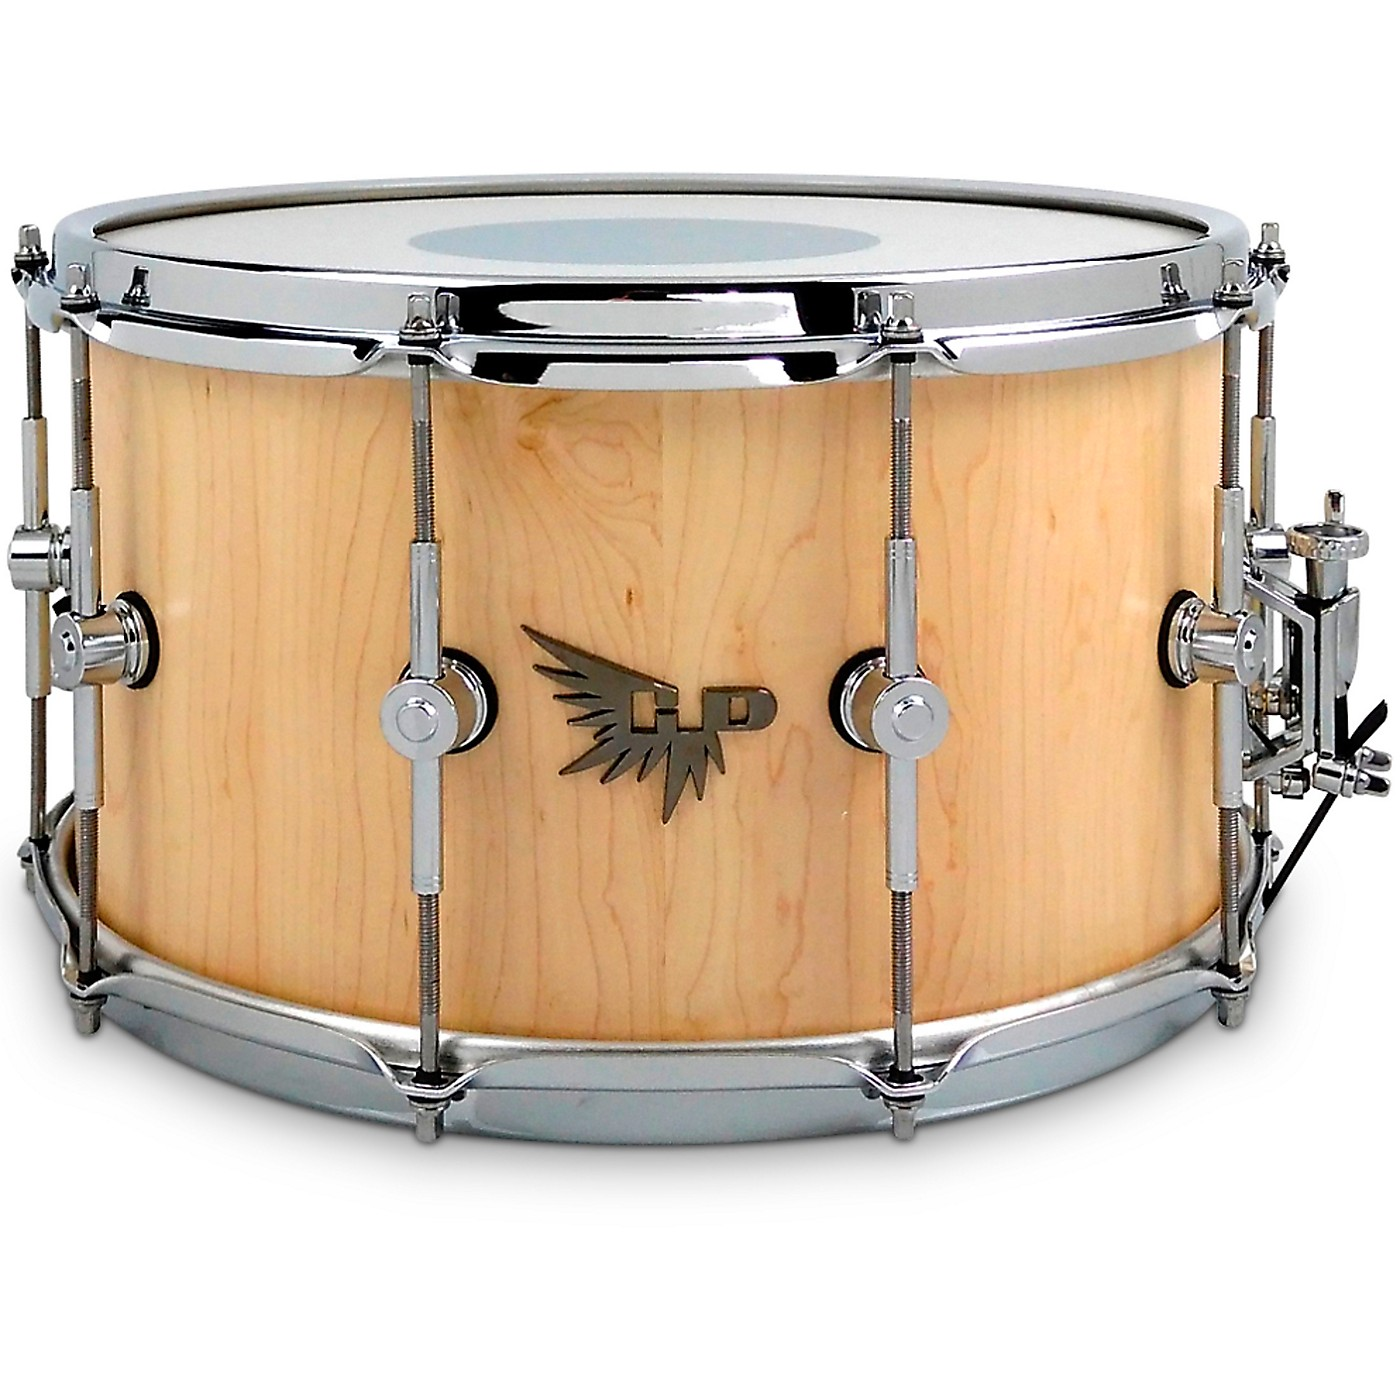 Hendrix Drums Player's Stave Series Maple Snare Drum thumbnail